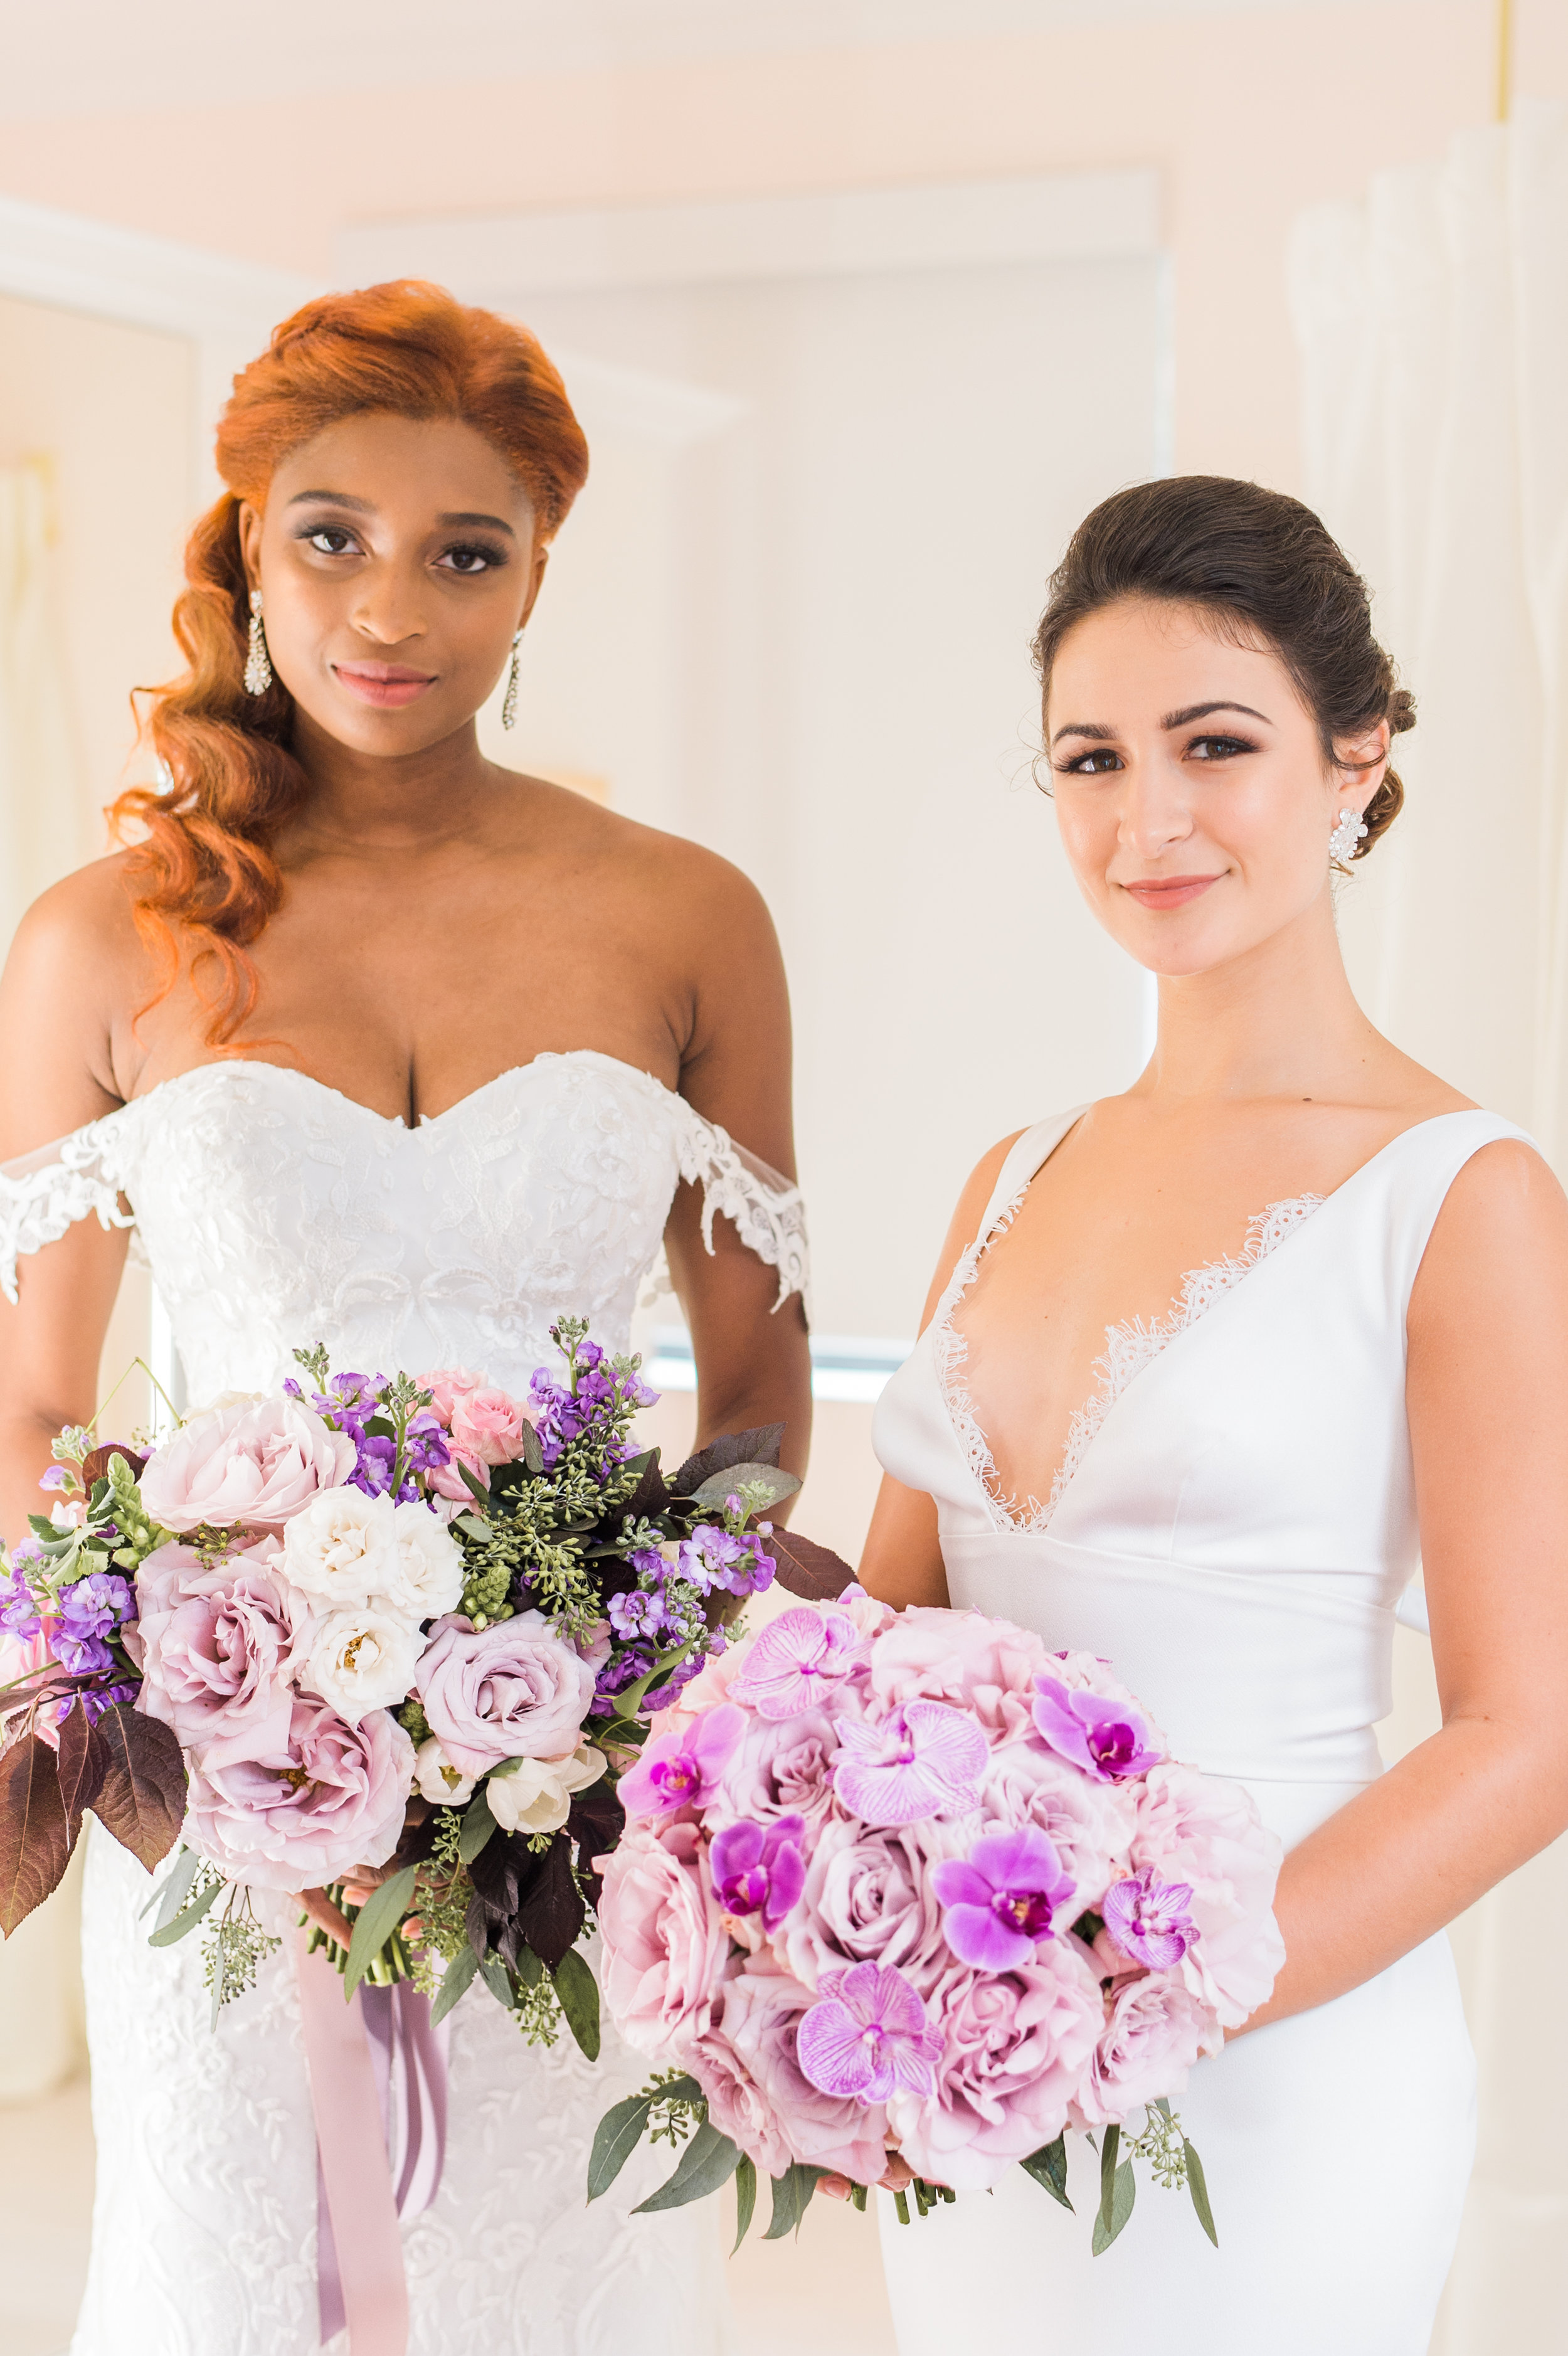 The lovely  Kayla Poawui  and  Julianna Carfaro  modeling fall gowns and flowers.